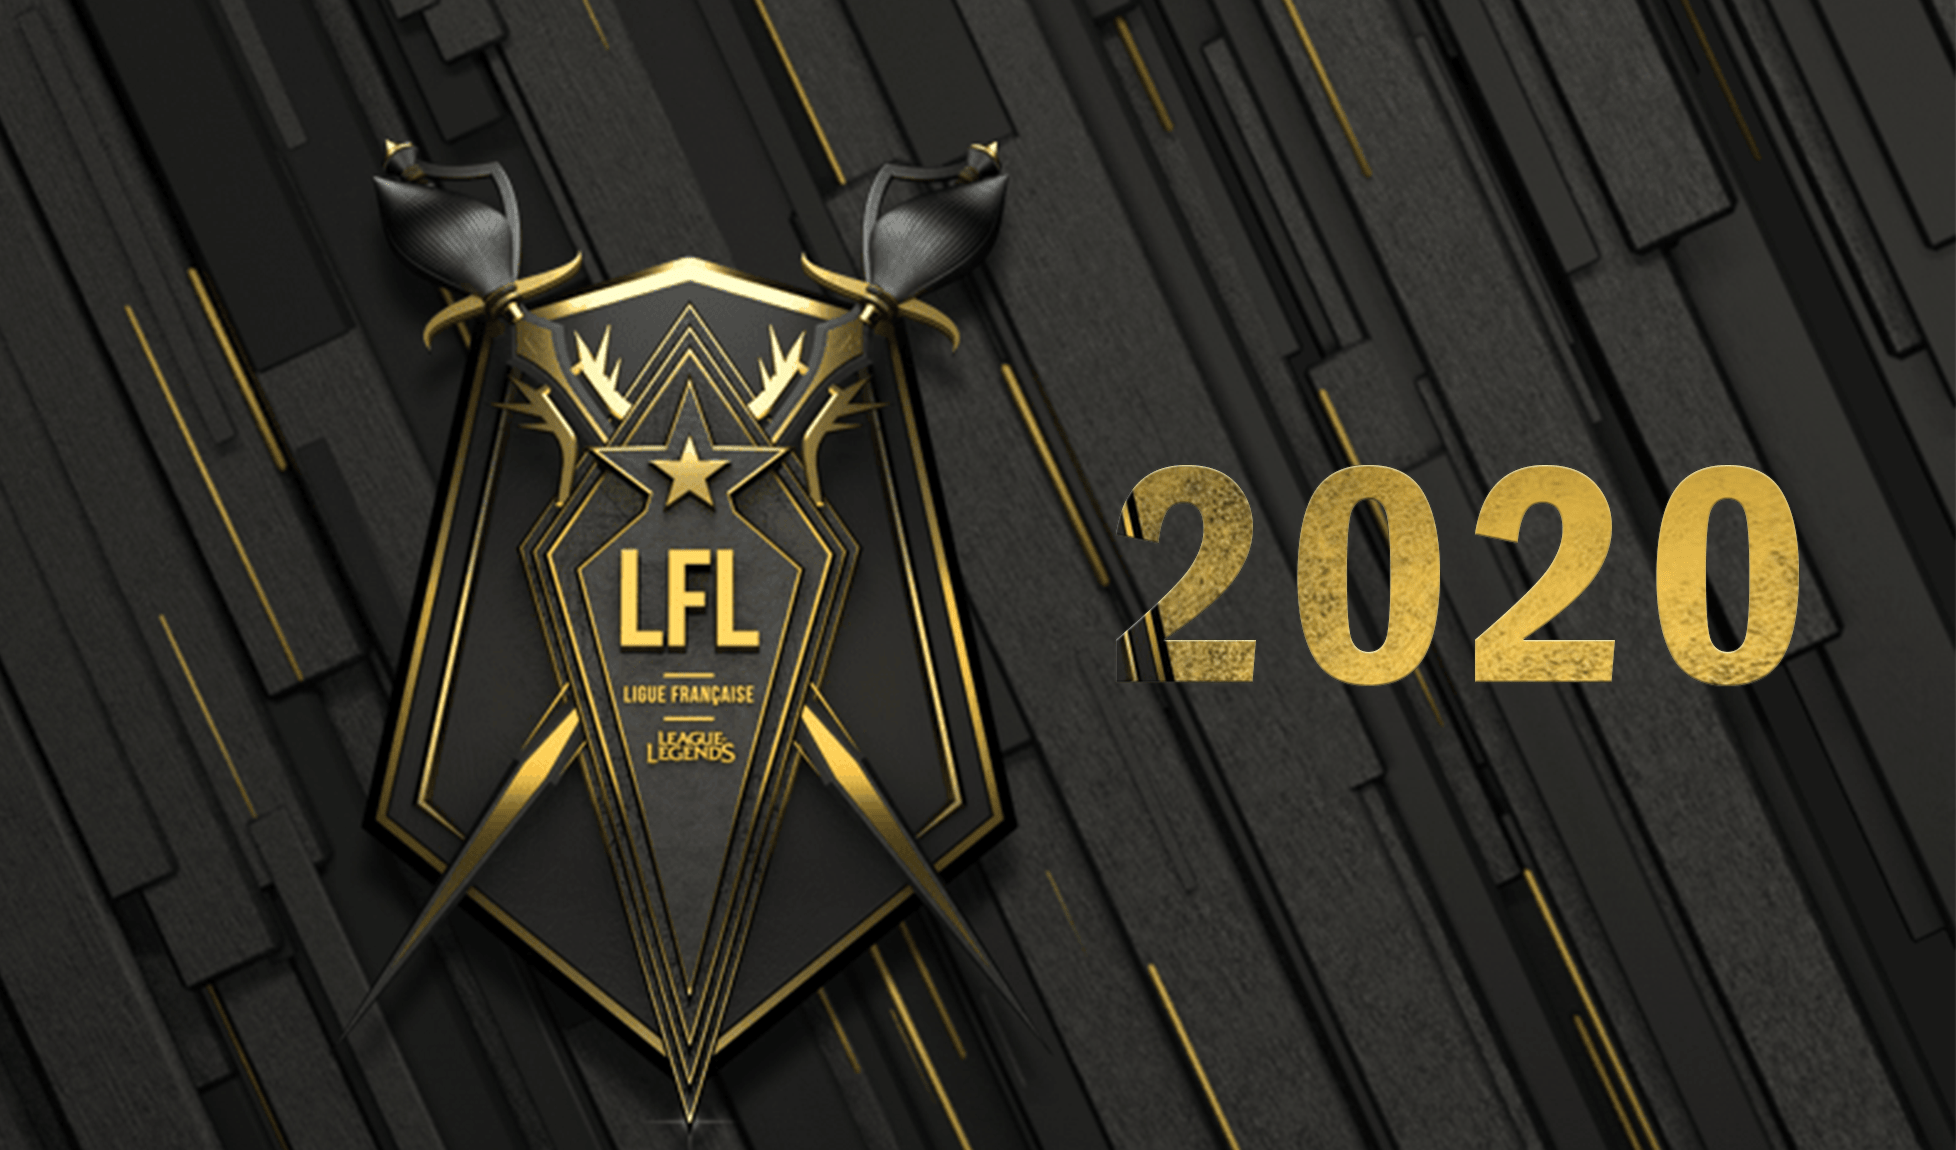 LFL 2020, lancement imminent